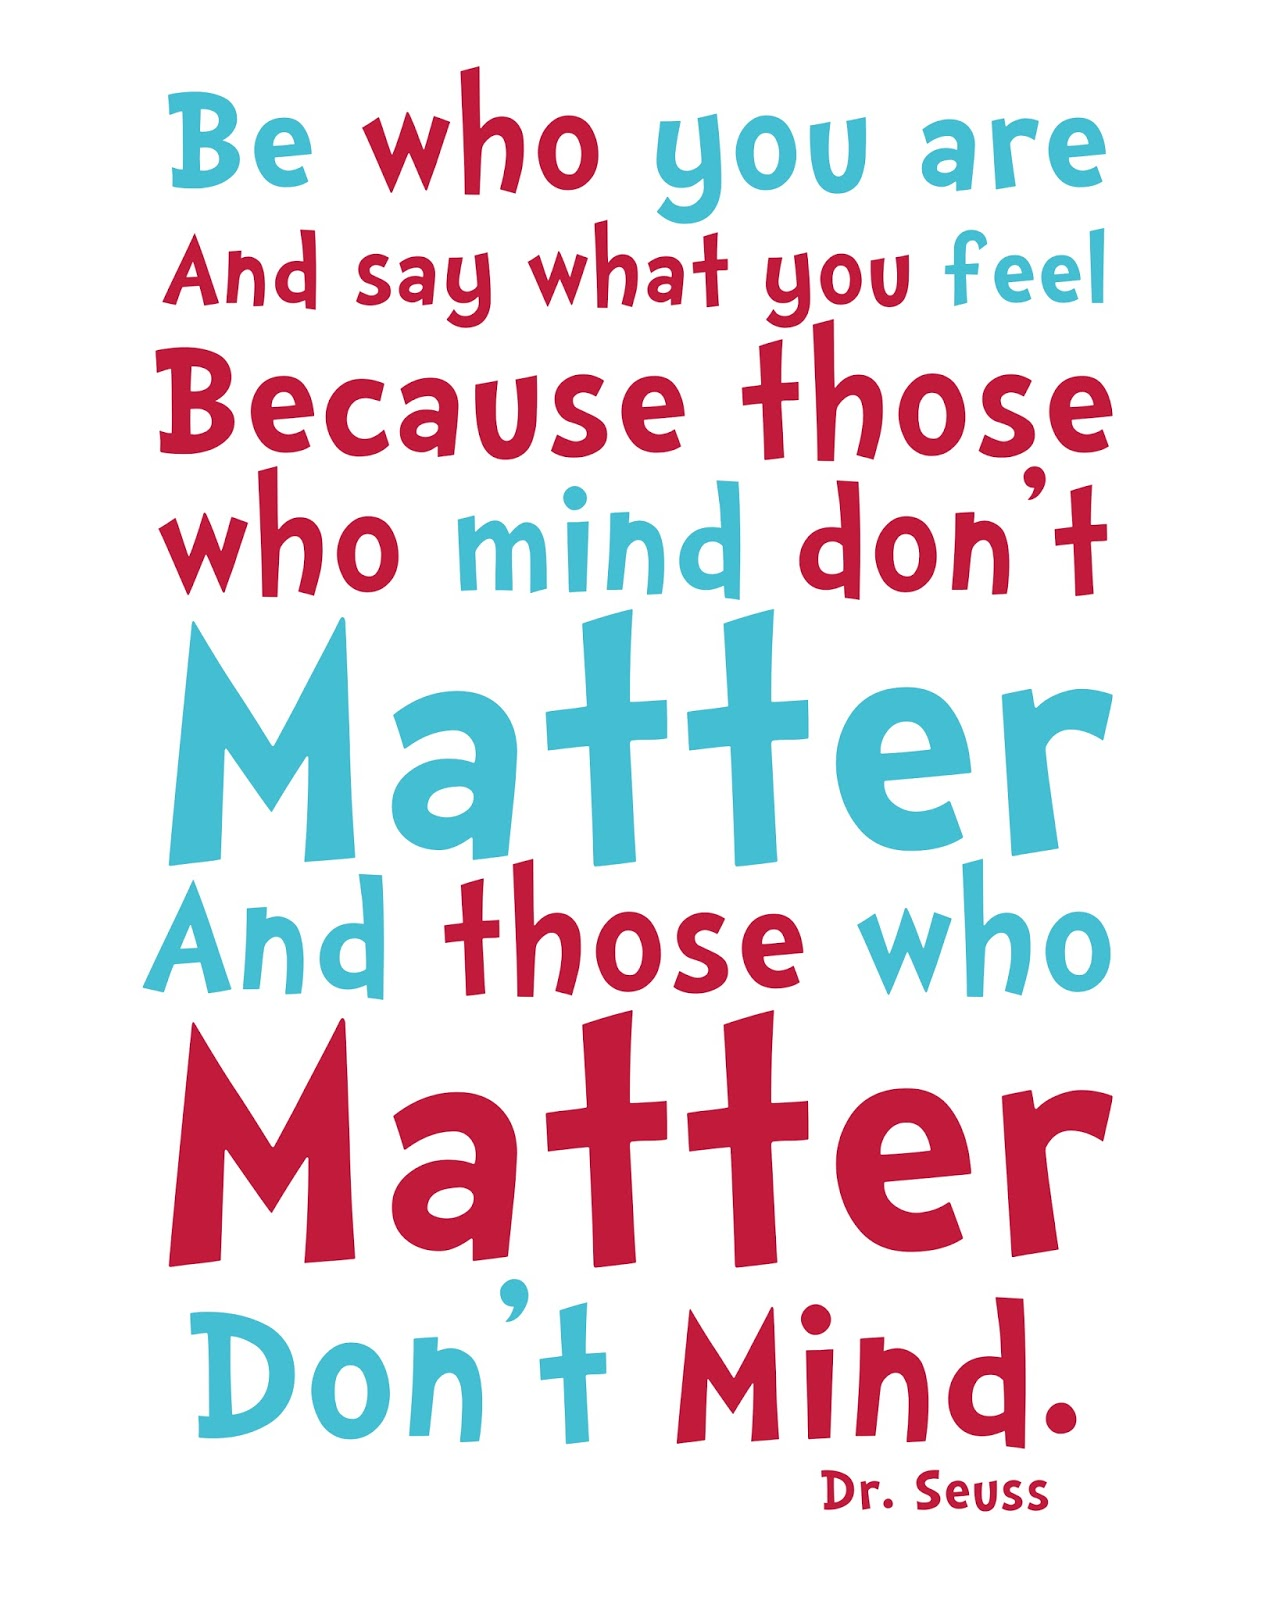 Printable Dr Seuss Quotes on Best Dr Seuss Images On Pinterest Suess Preschool School